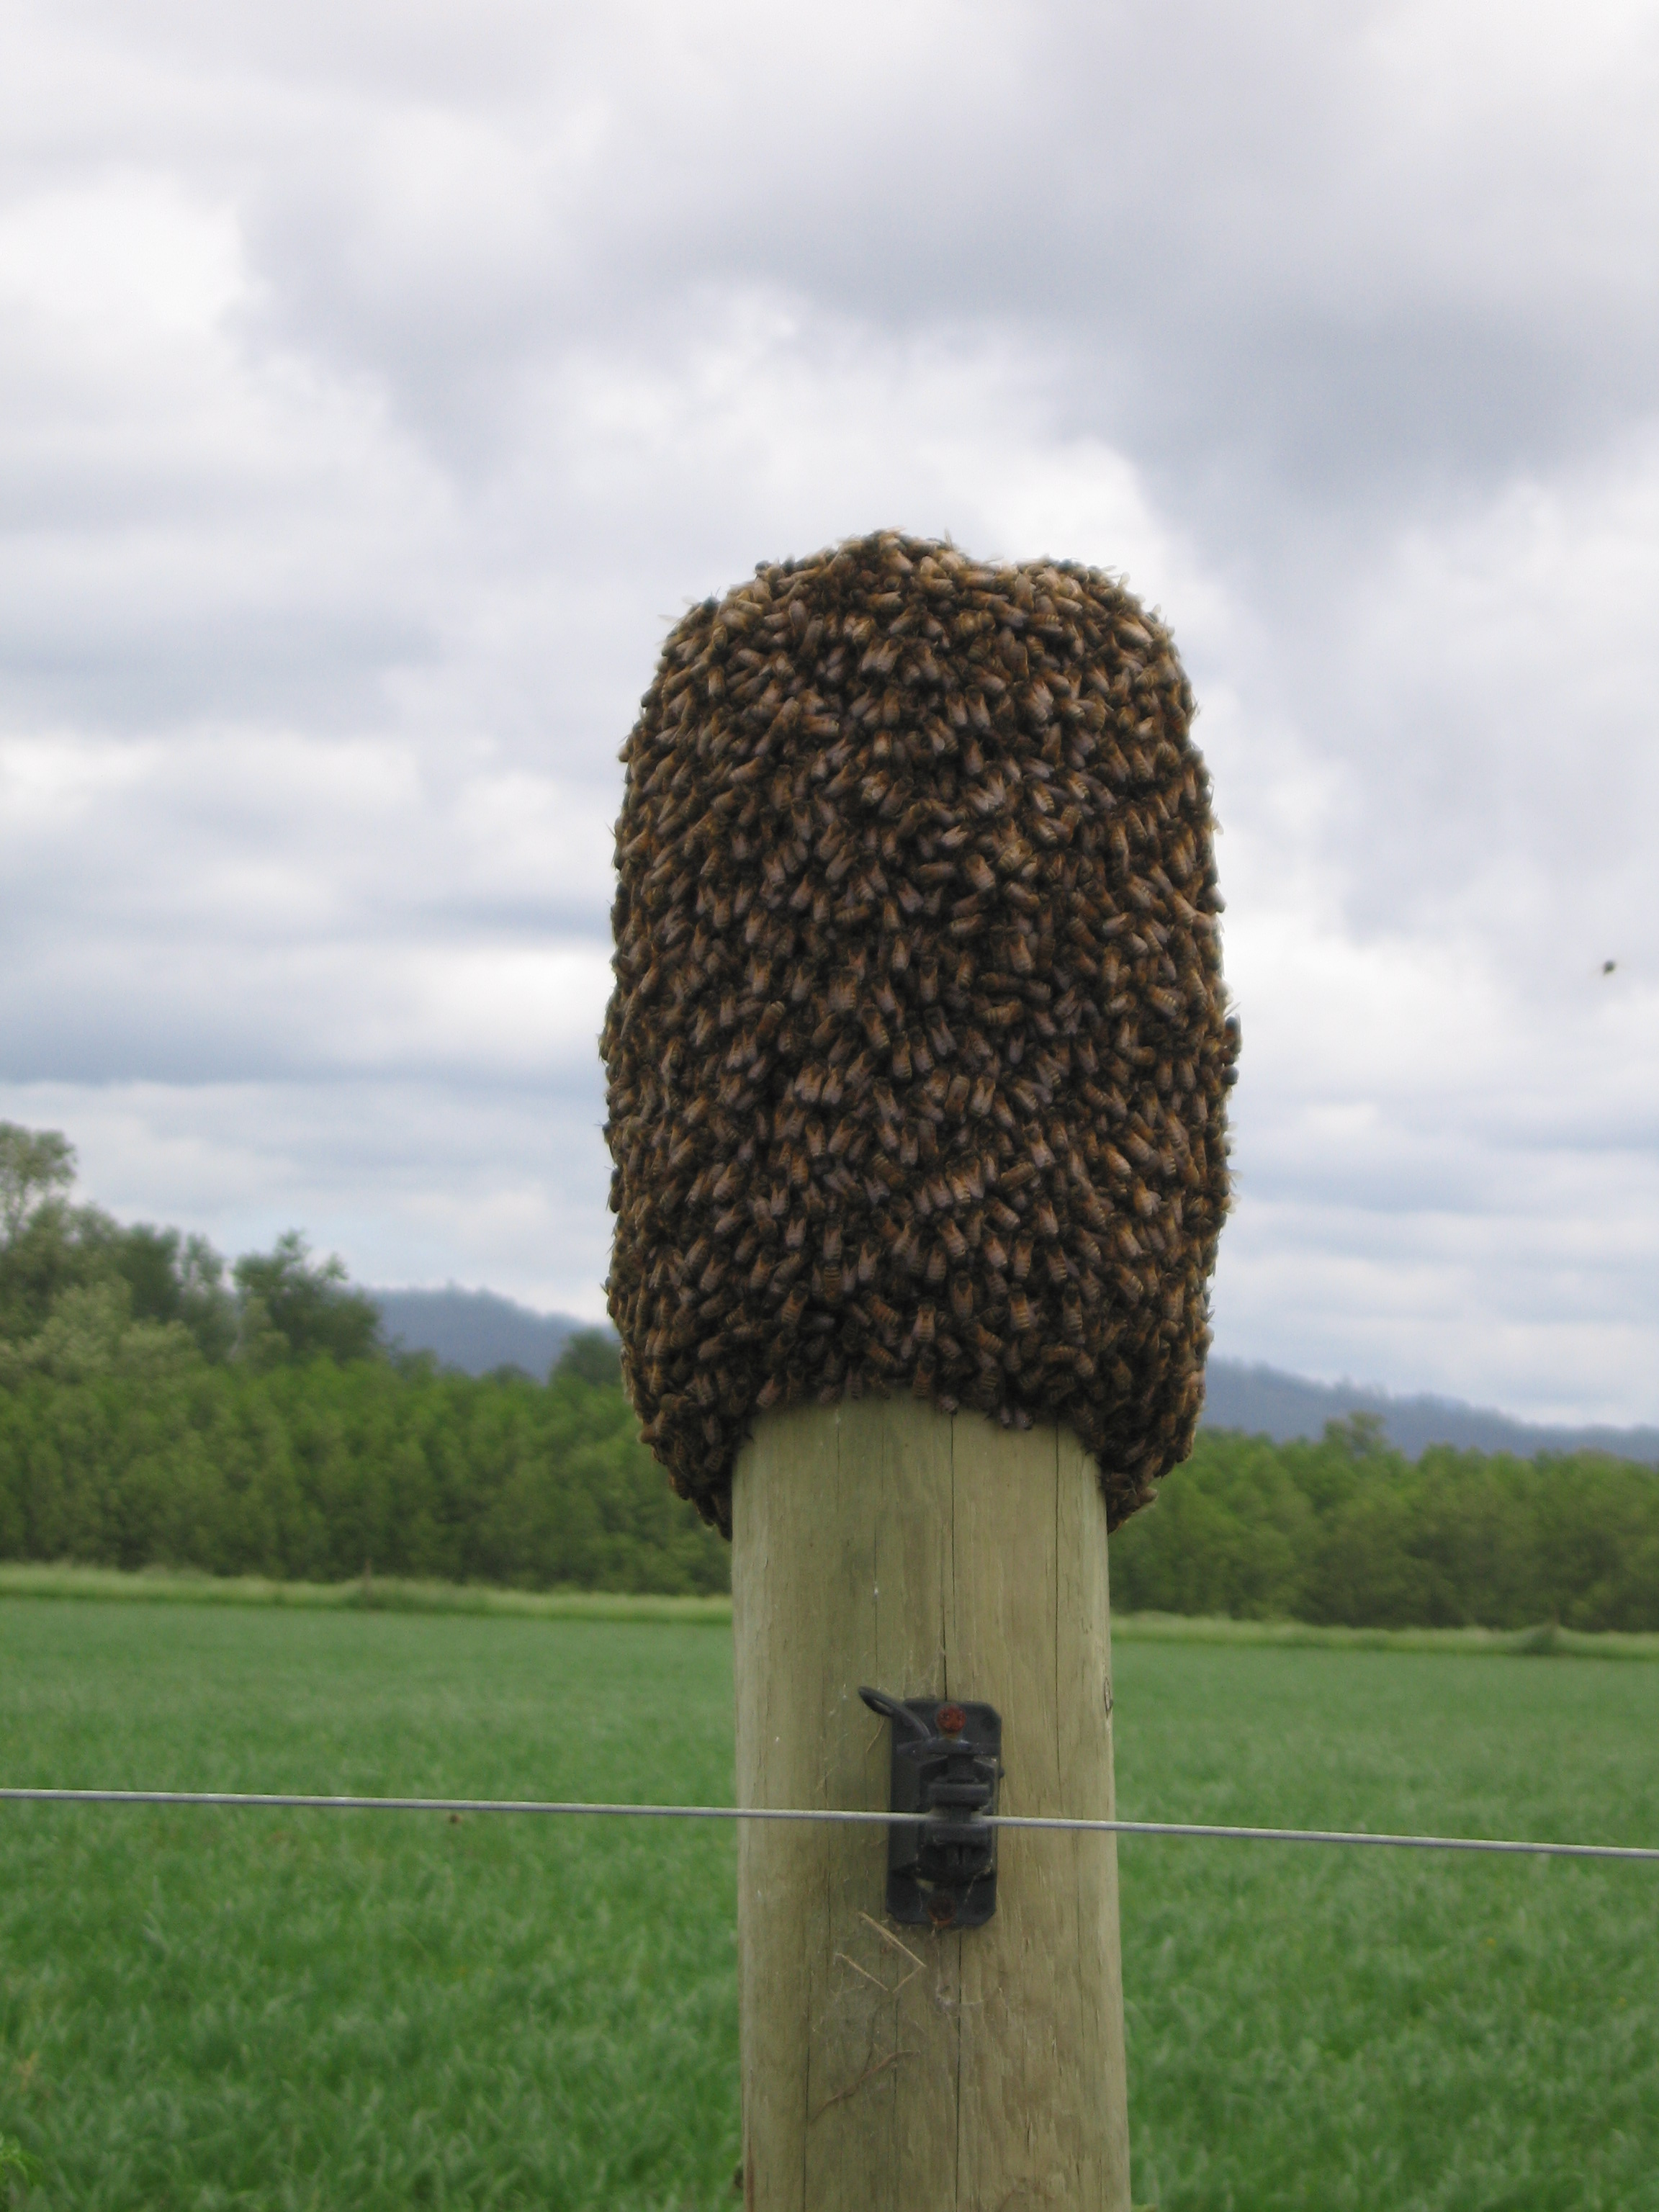 Bees on post_0003